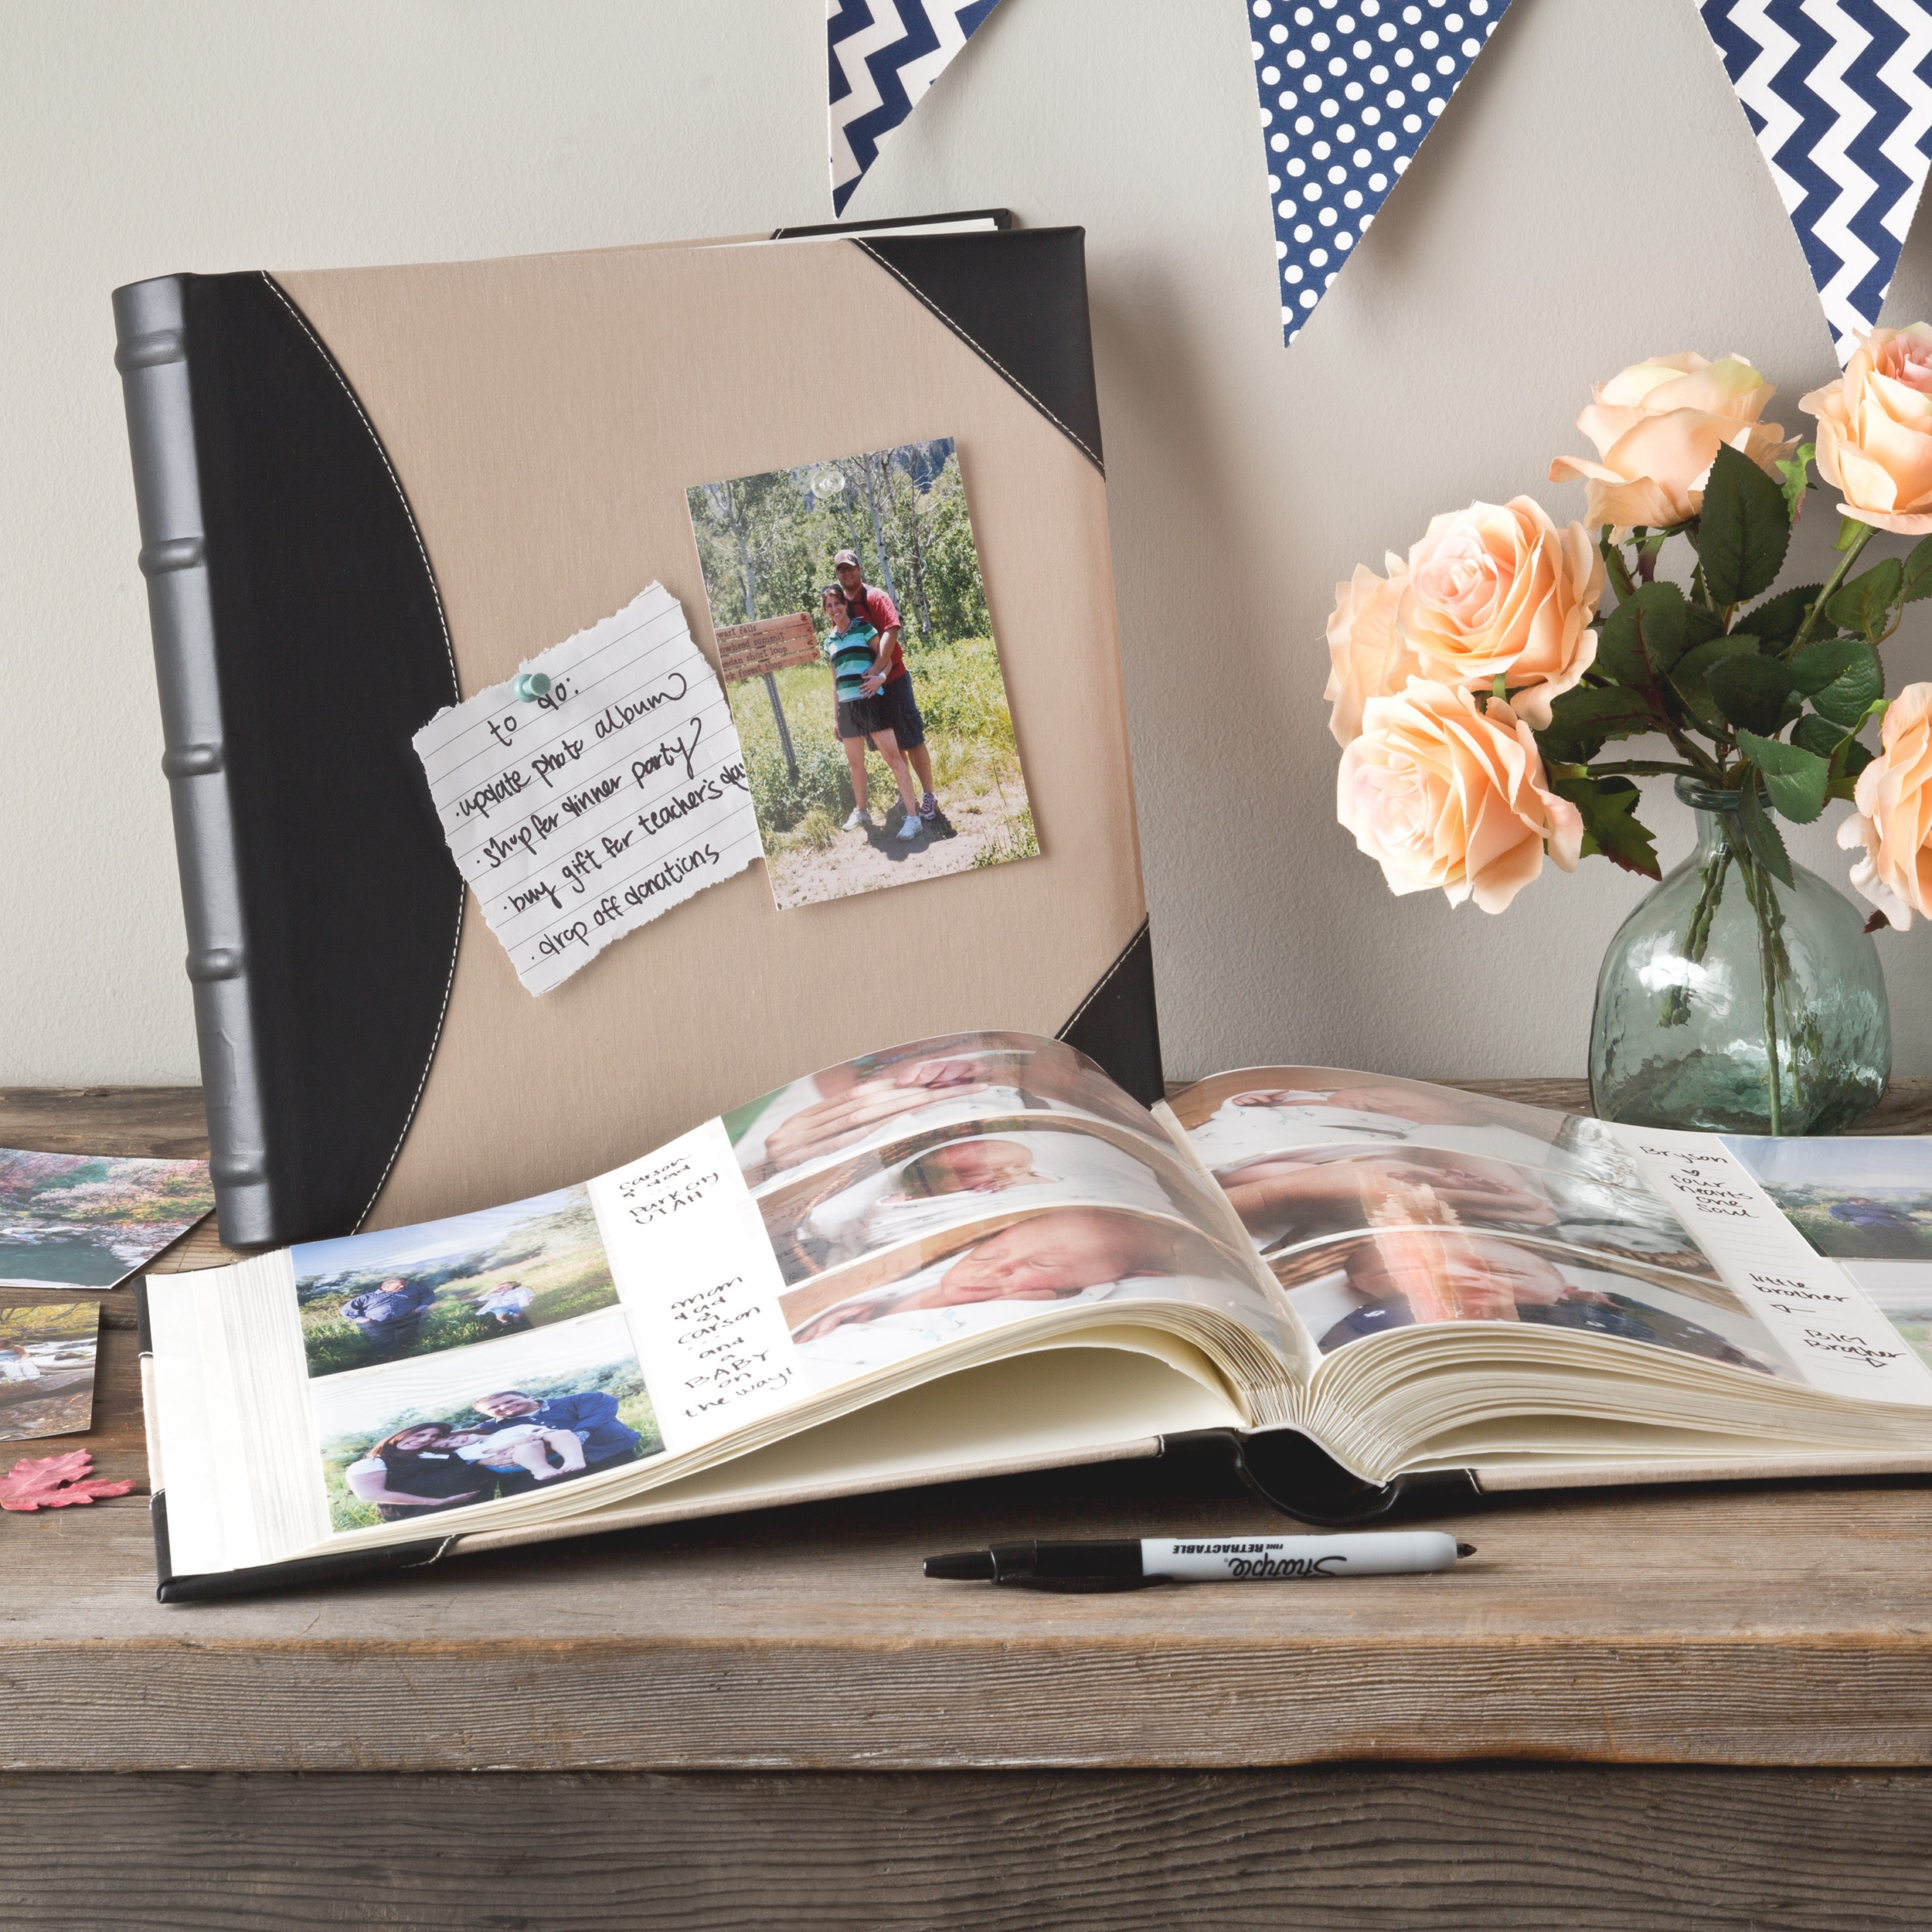 Pioneer Photo Albums High Capacity Pocket Fabric And Leatherette Cover Album Pack Of 2